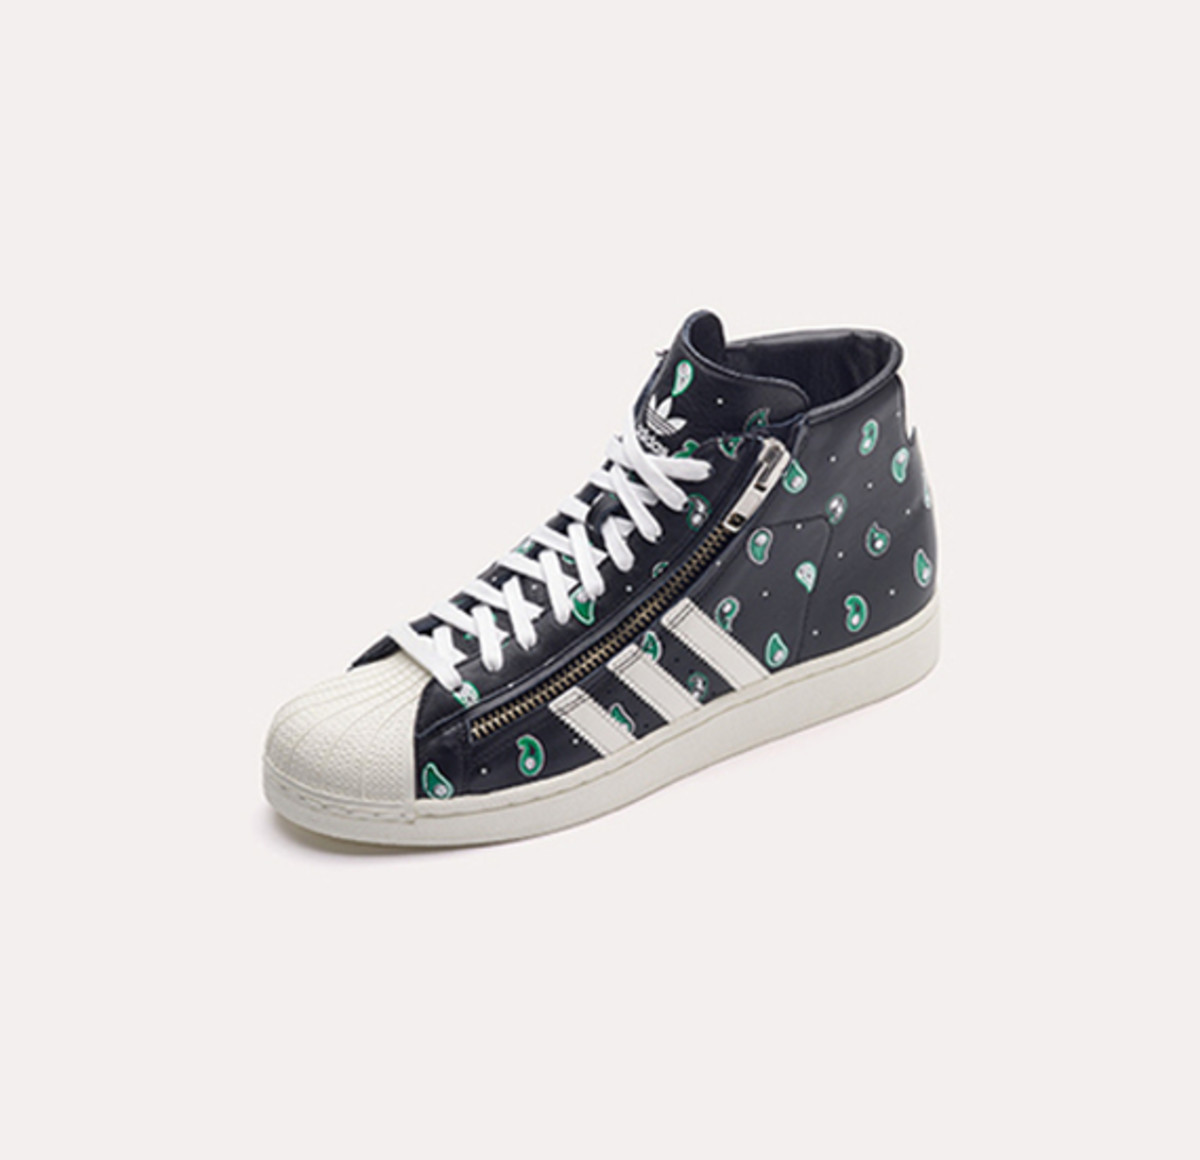 adidas-originals-opening-ceremony-fall-winter-2013-collection-18